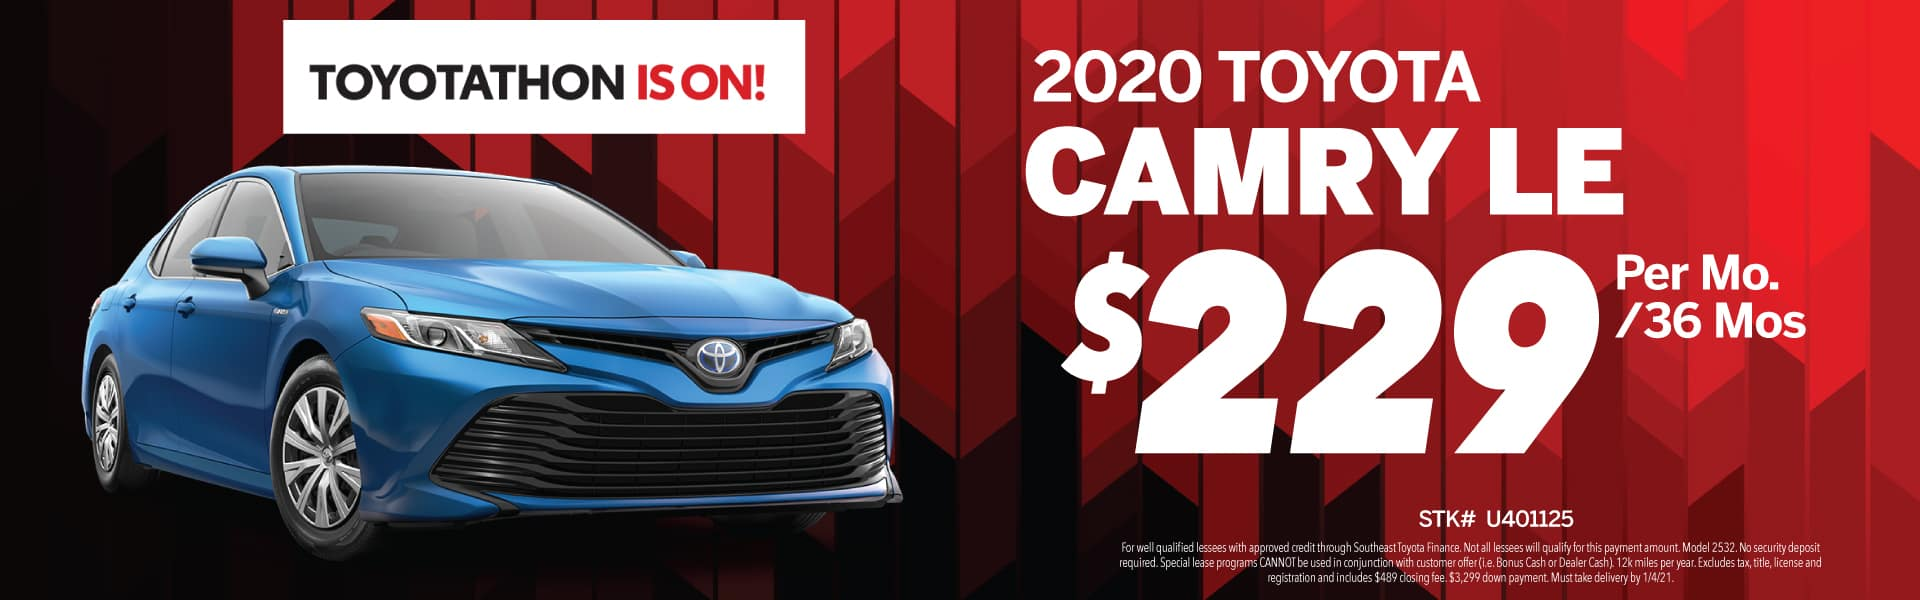 2020 Toyota Camry offer!